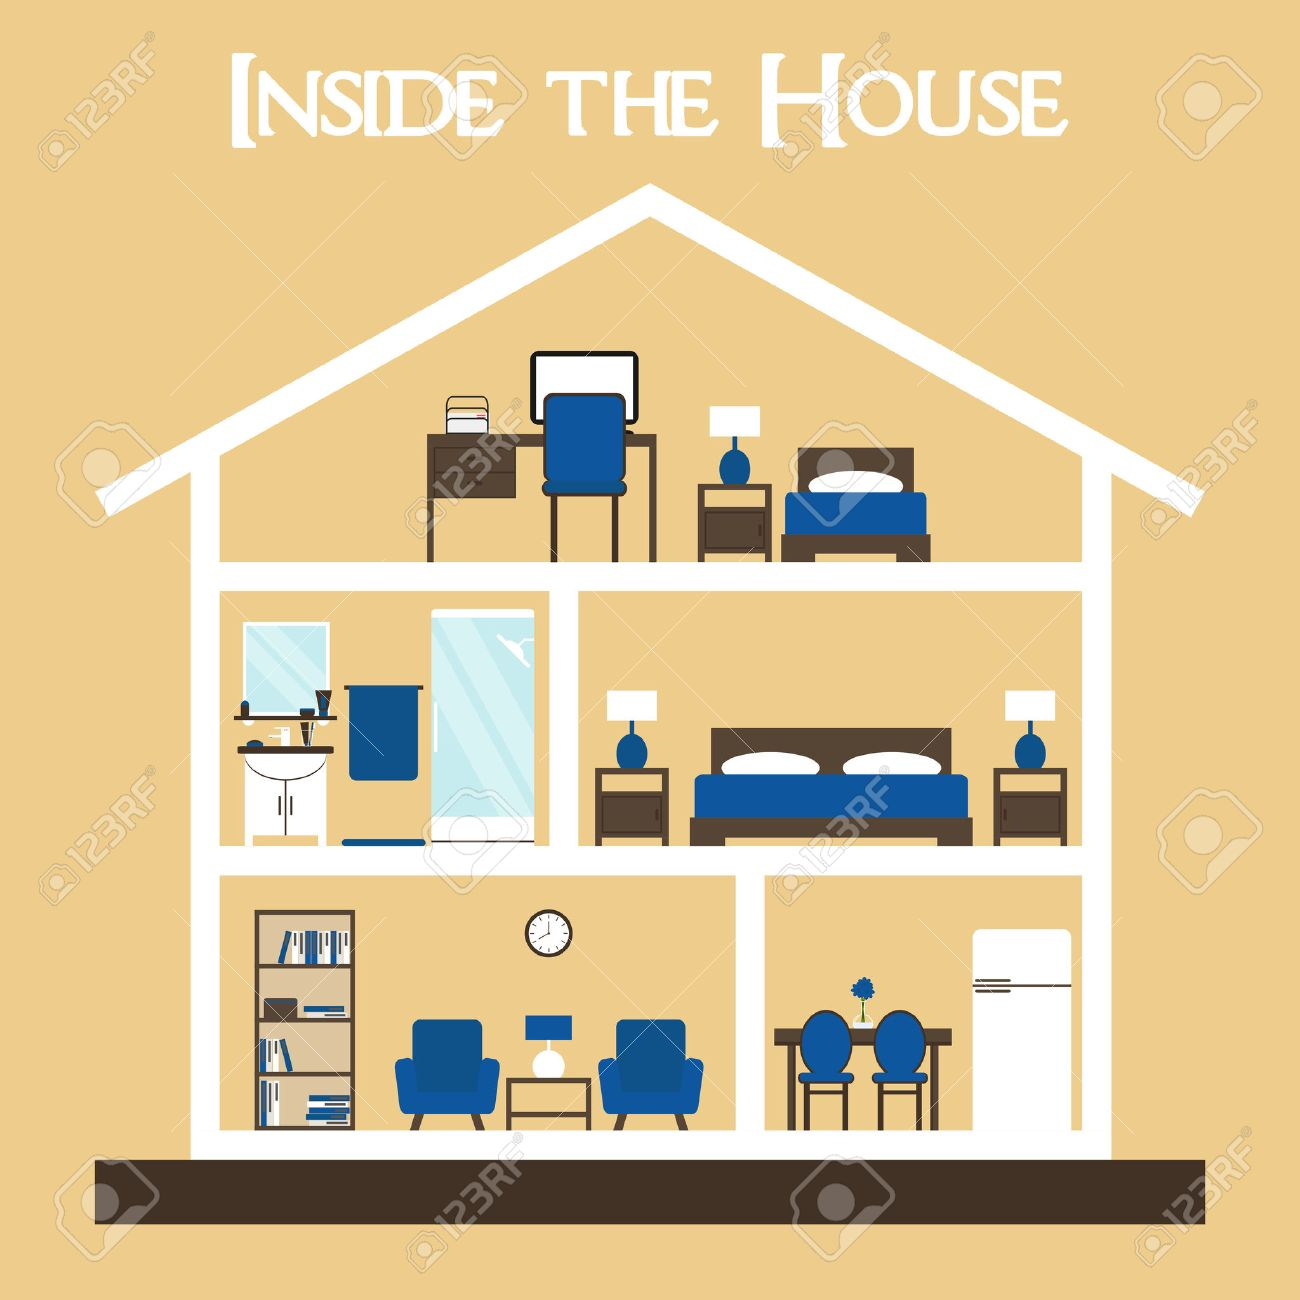 House. House Interior. Inside The House. House Cross. Cute Dollhouse With  Furniture